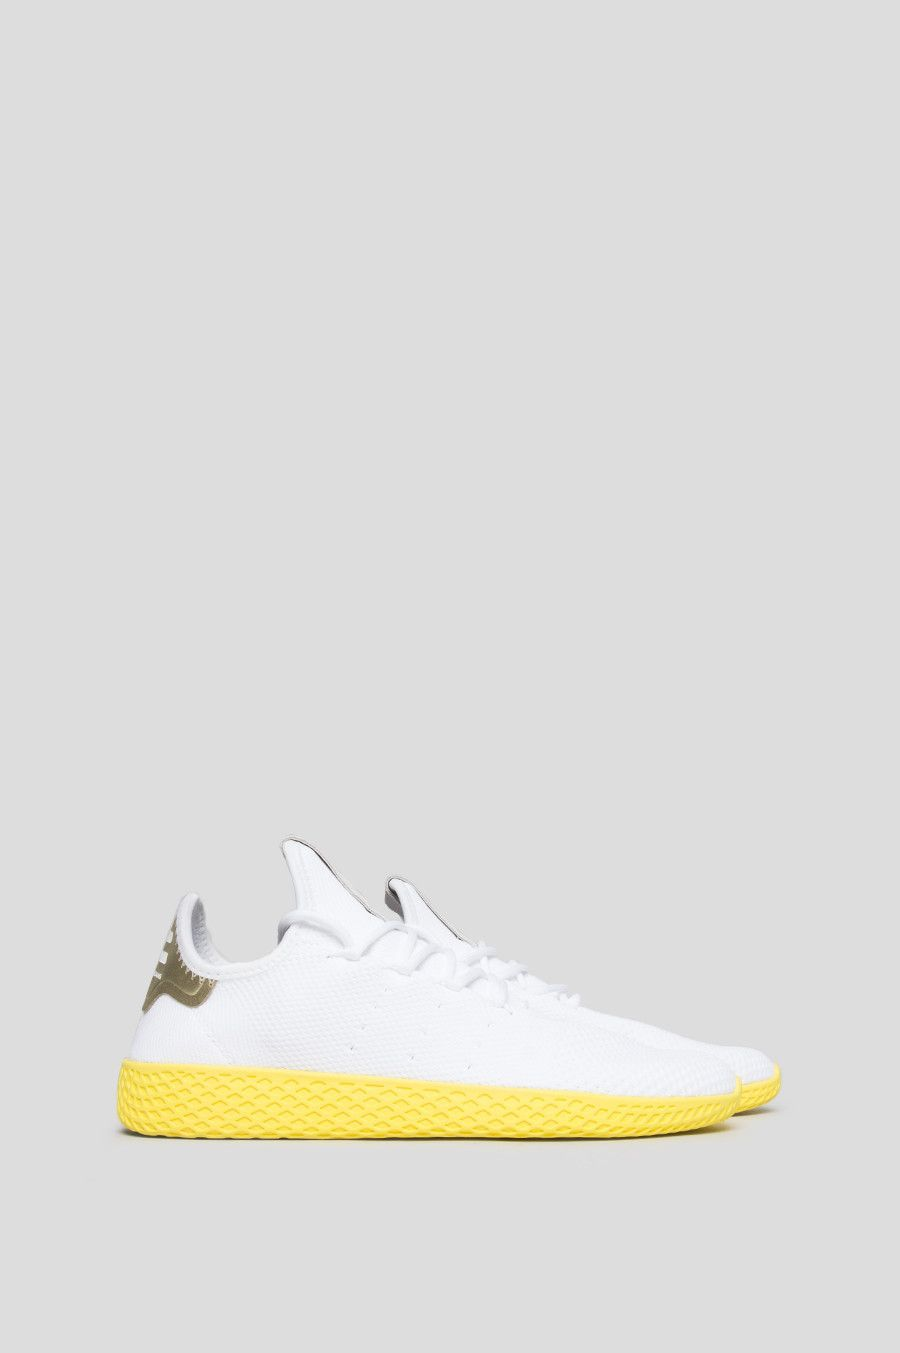 Adidas X Pharrell Williams Tennis Hu White Yellow Pharrell Williams Williams Tennis Pharrell